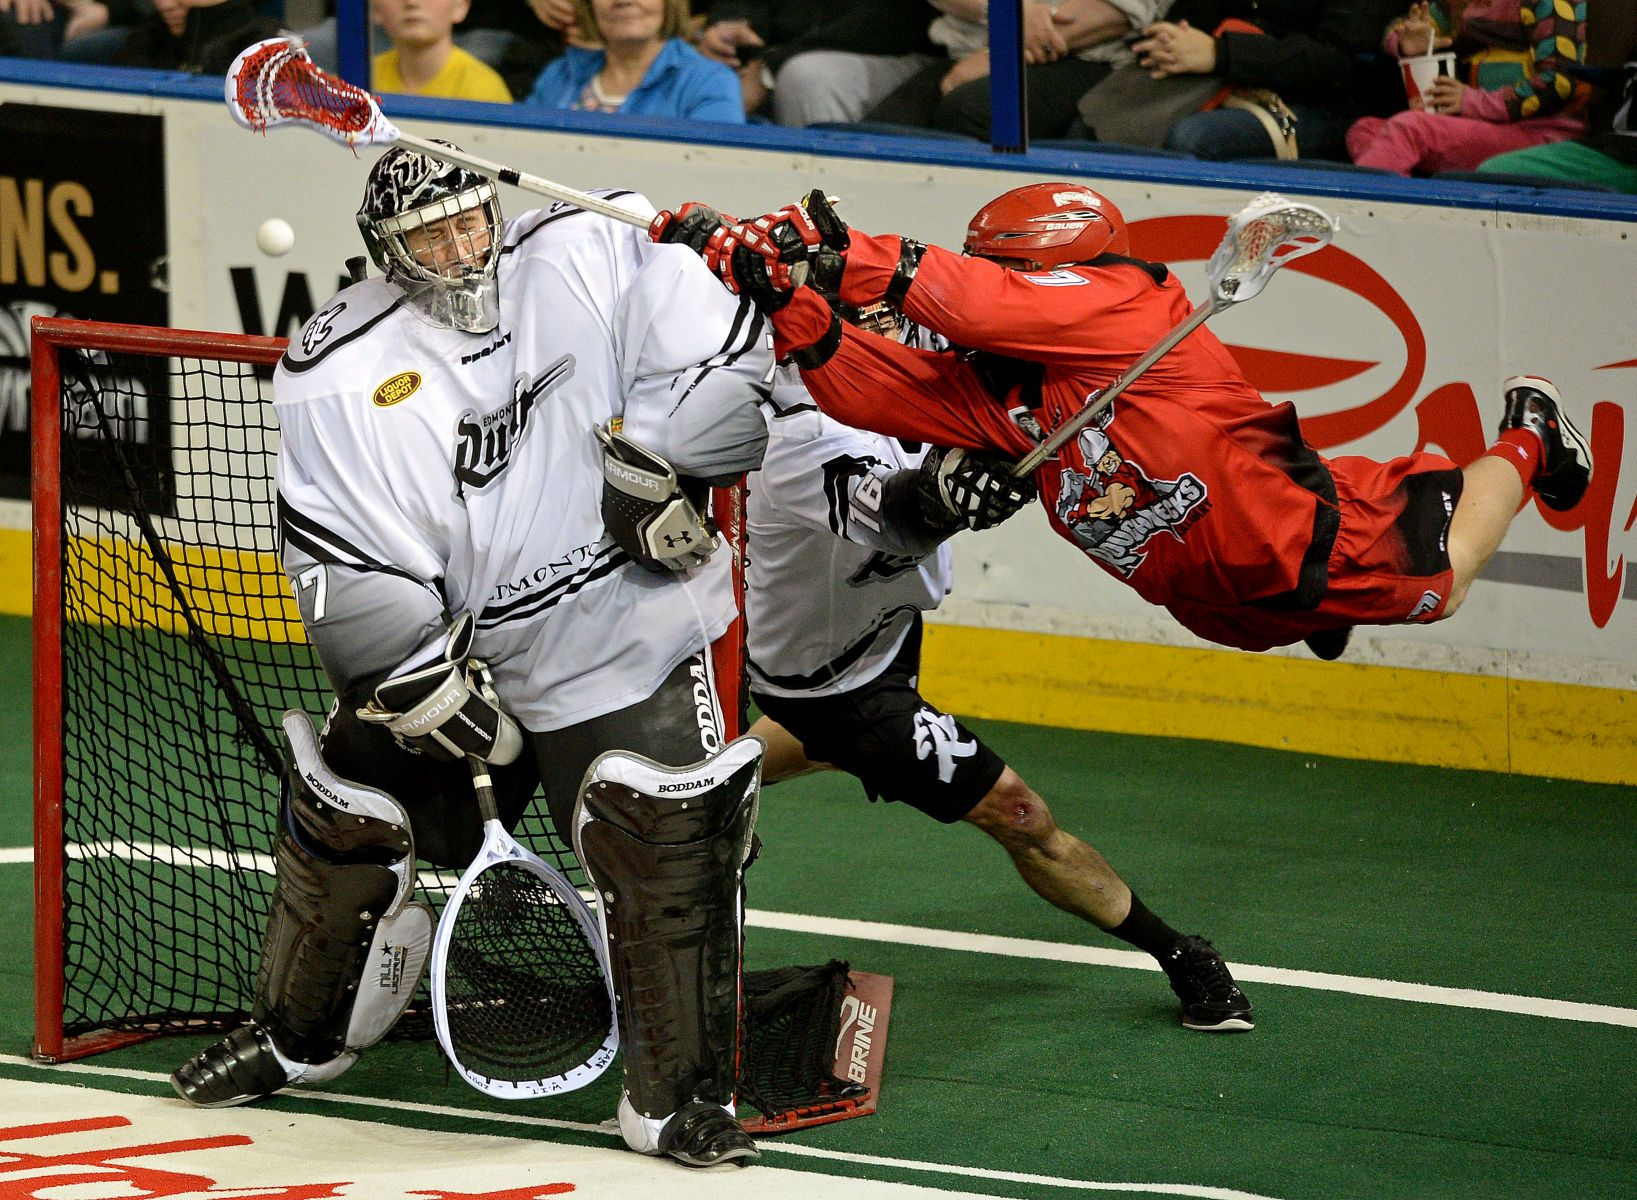 1edmonton_rush_vs_calgary_roughnecks_1.jpg